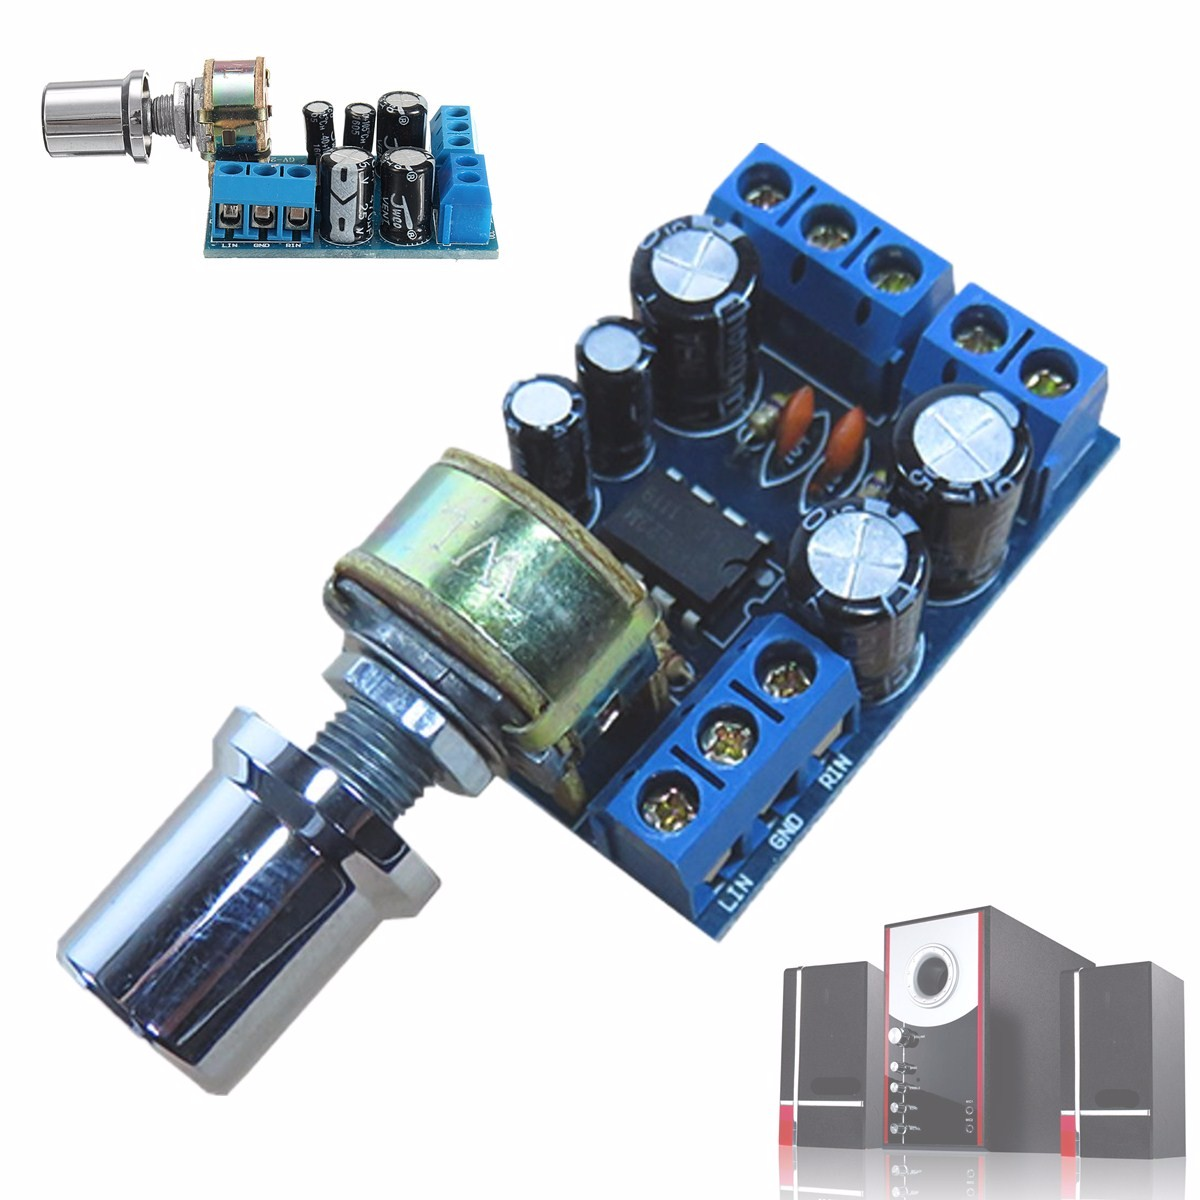 LEORY TDA2822M Stereo Audio Amplifier Board Dual Channel 1W*2 Volume Control Operational Amplifier Chips  Board DC 1.8-12V